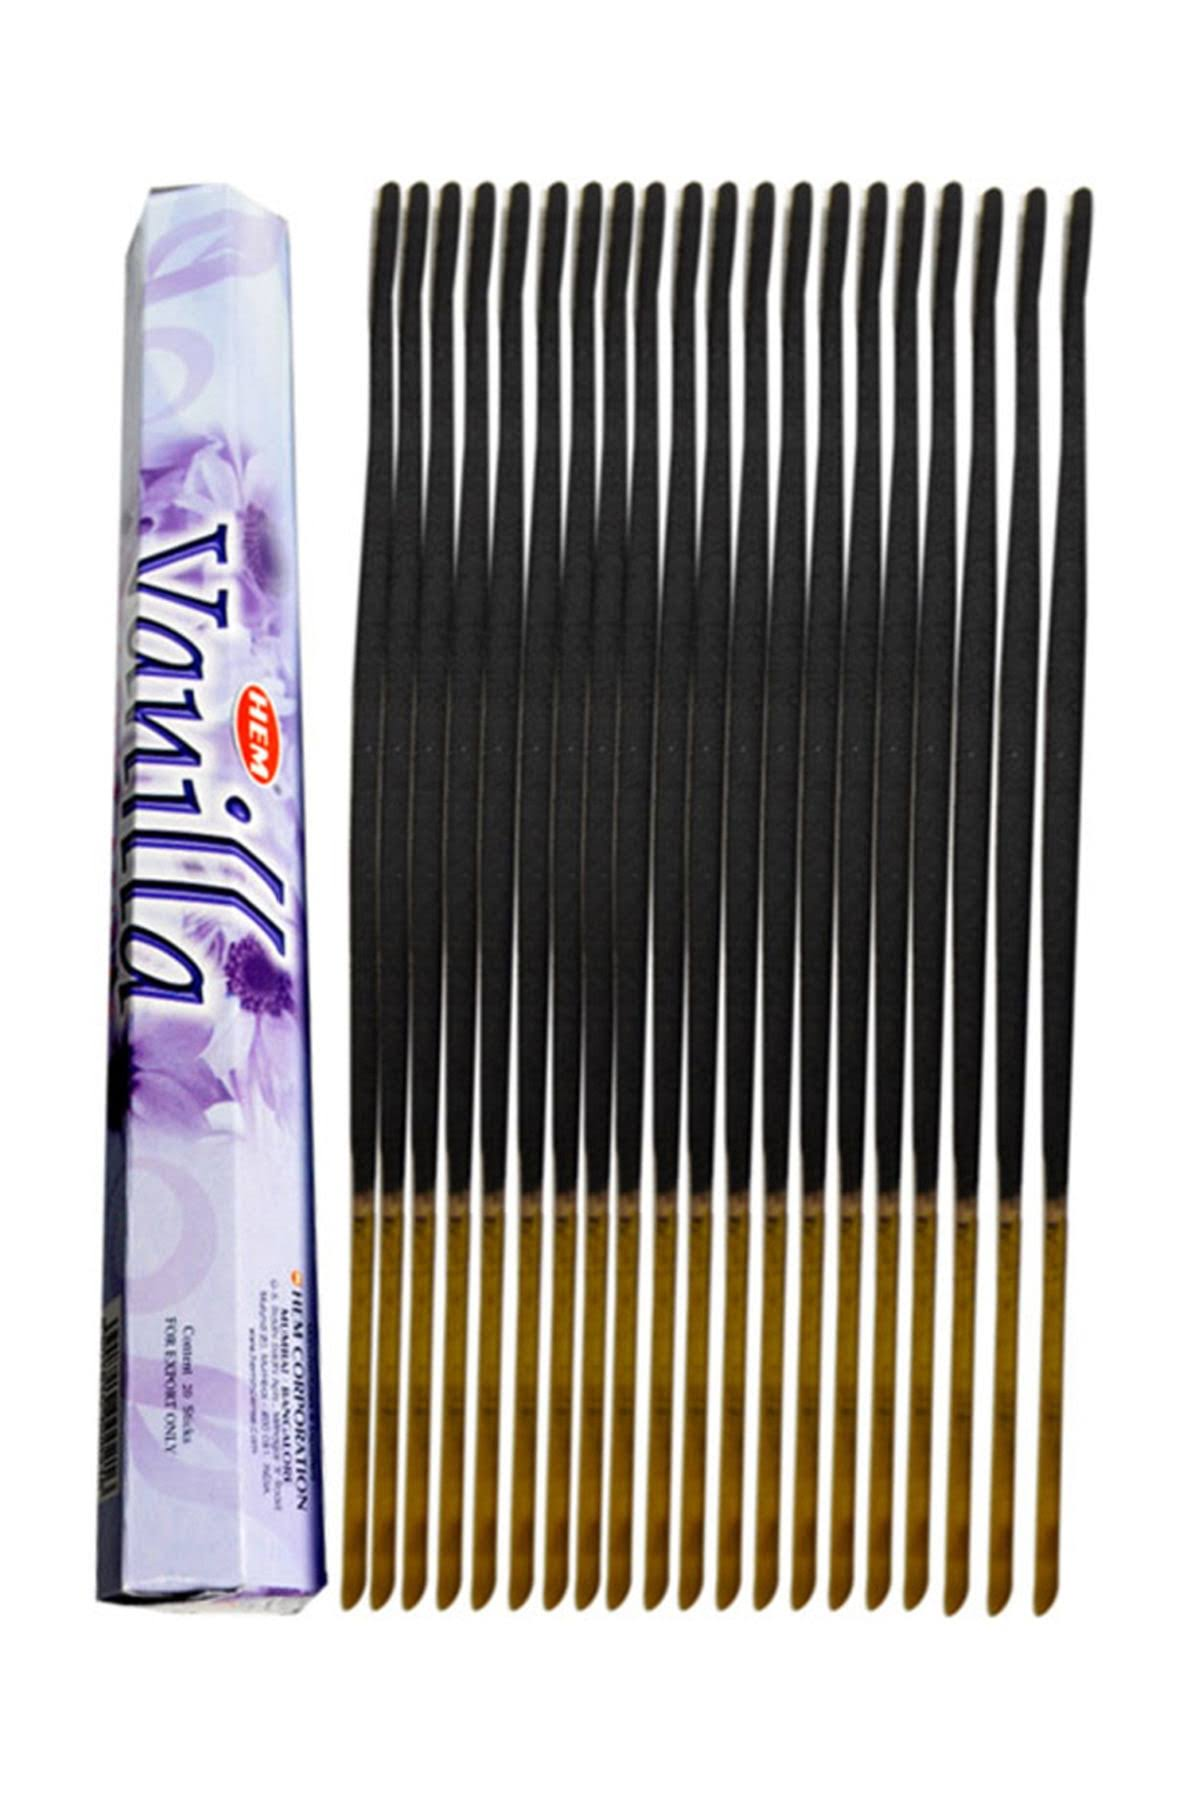 Hem Incense Sticks - Vanilla